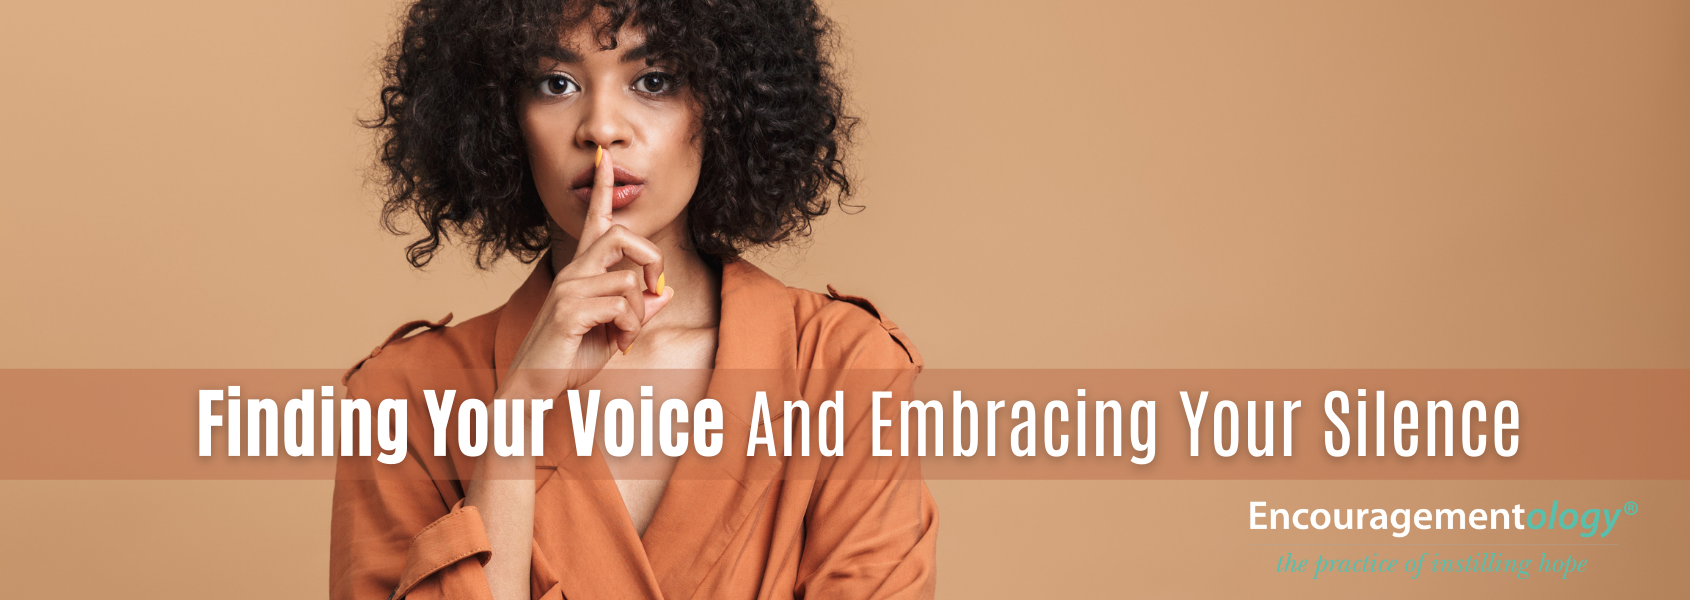 Finding Your Voice And Embracing Your Silence